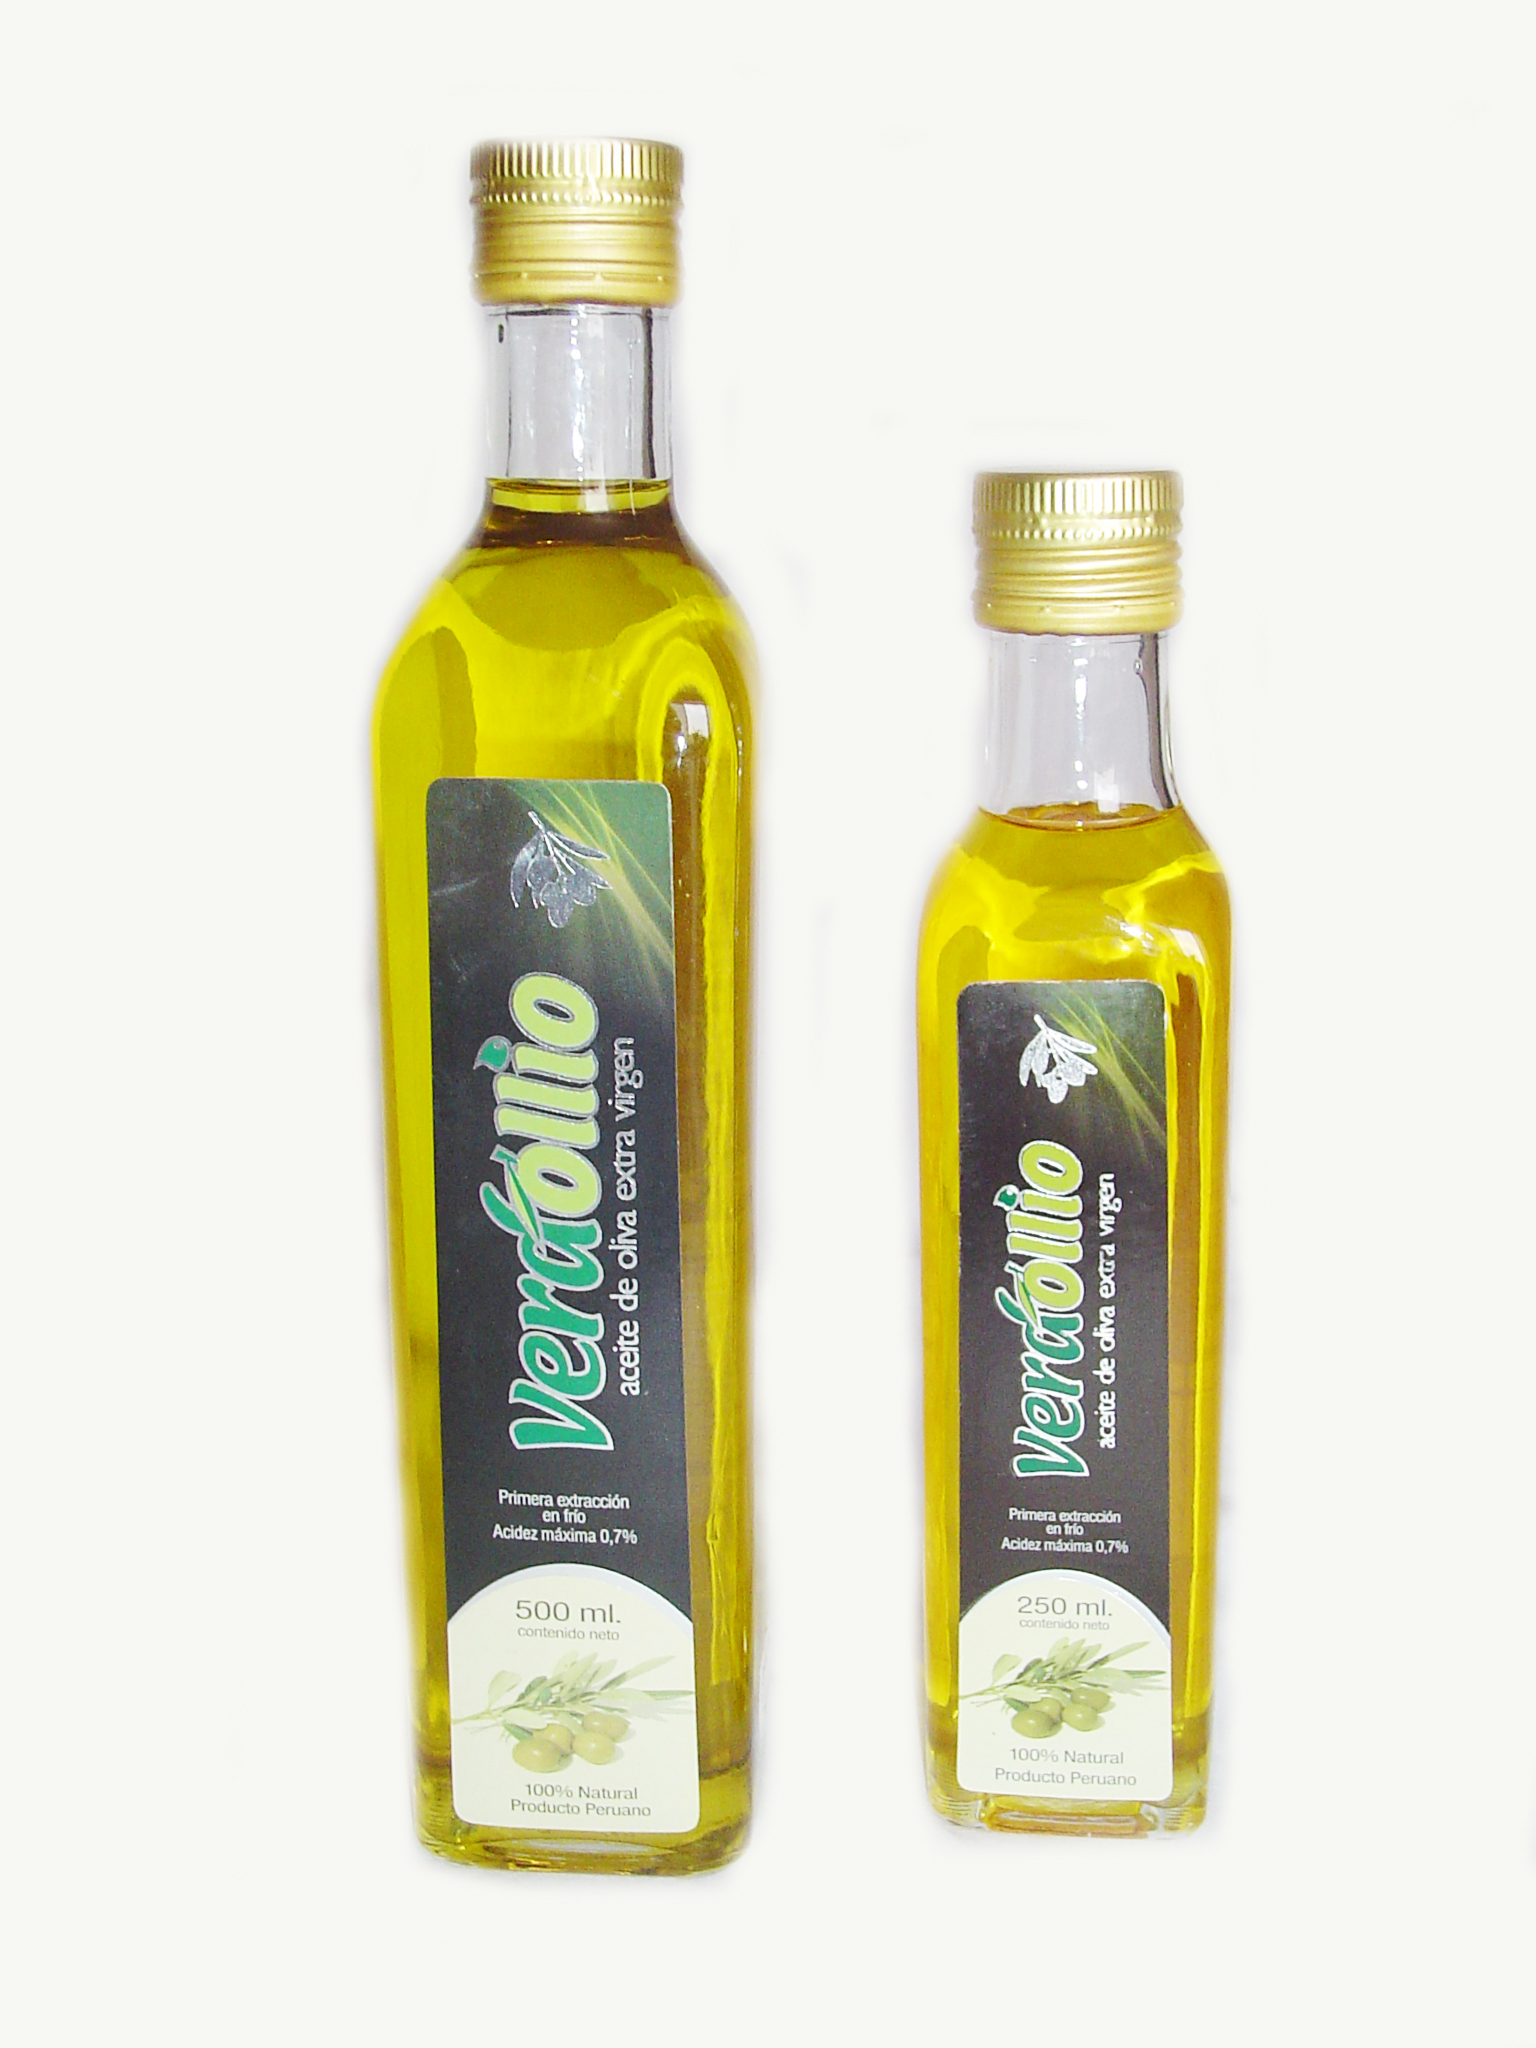 WBT Spanish olive oil